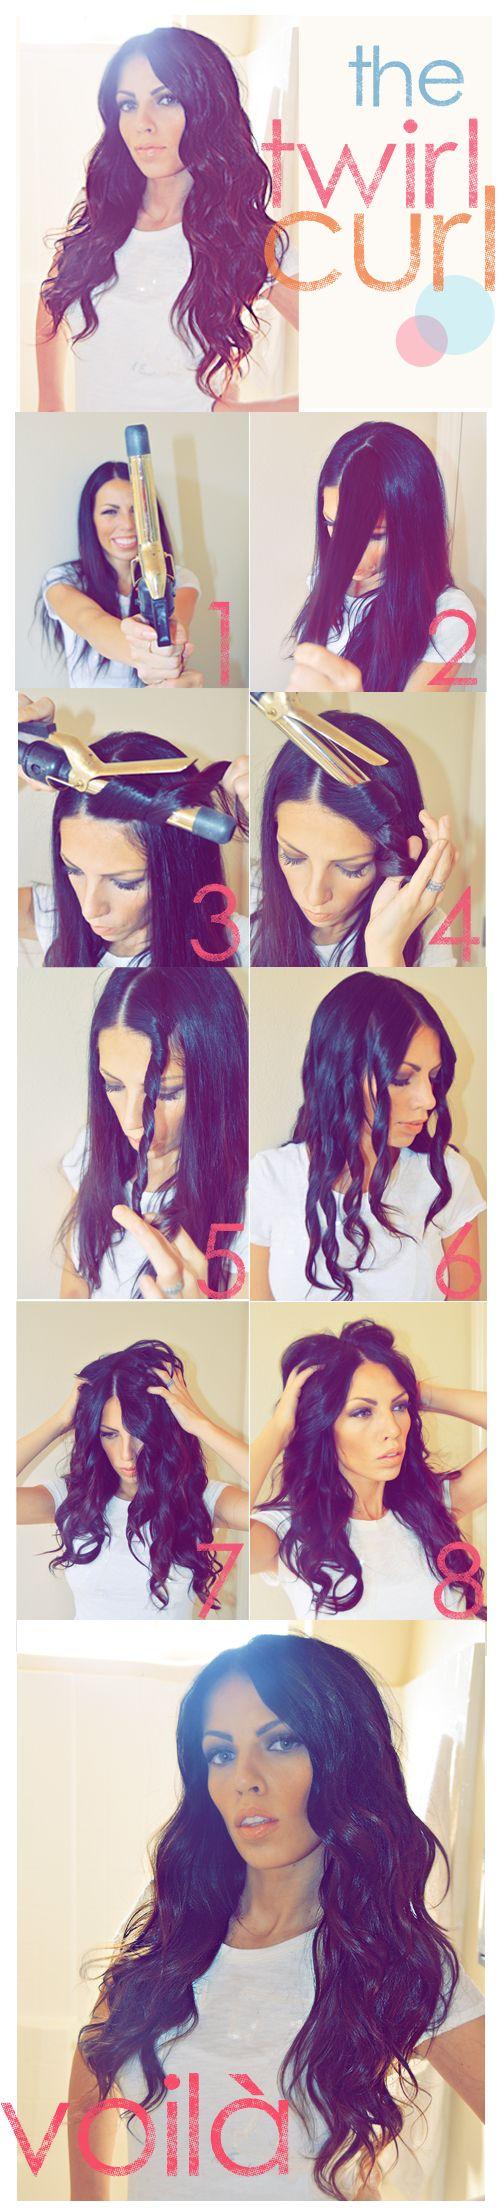 Twirl Curl Tutorial I'm gonna have to try this (what a silly look on her face trying to be sultry!)